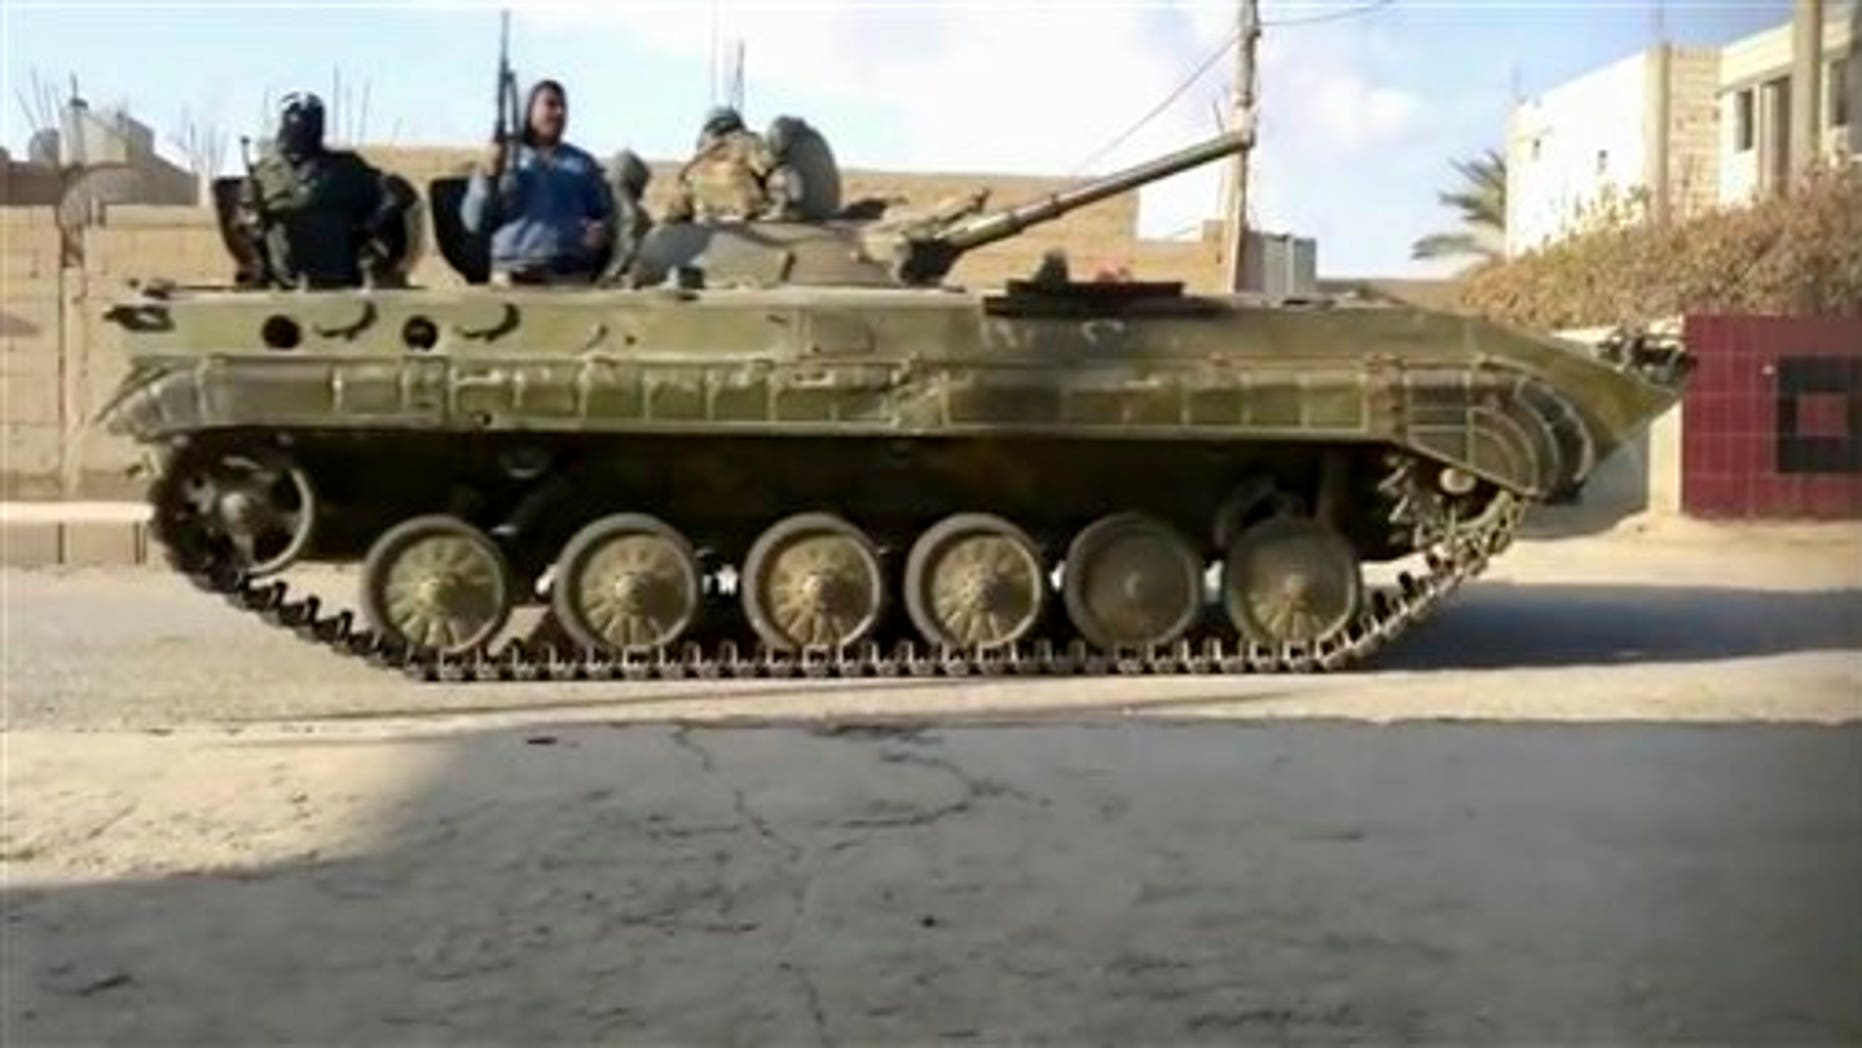 January 17, 2012: This image from amateur video made available by Shaam News Network purports to show a tank in Deir al-Zour, Syria.